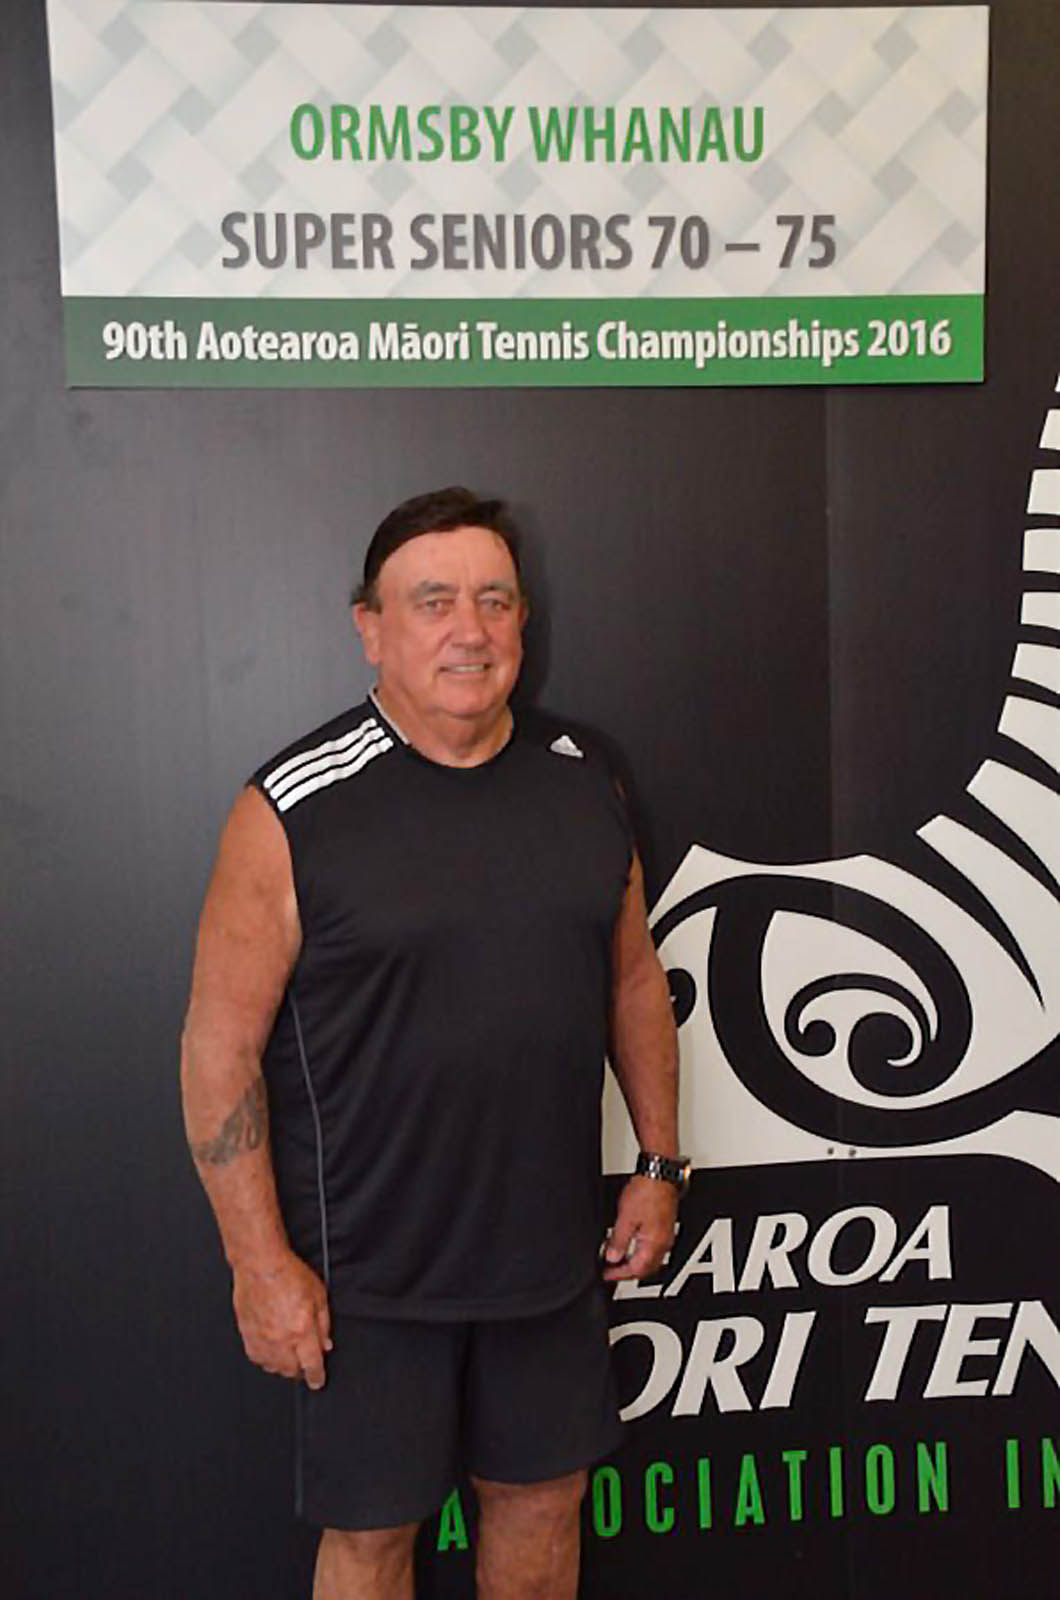 70+ Mens Singles Winner - Tikirau Garratt